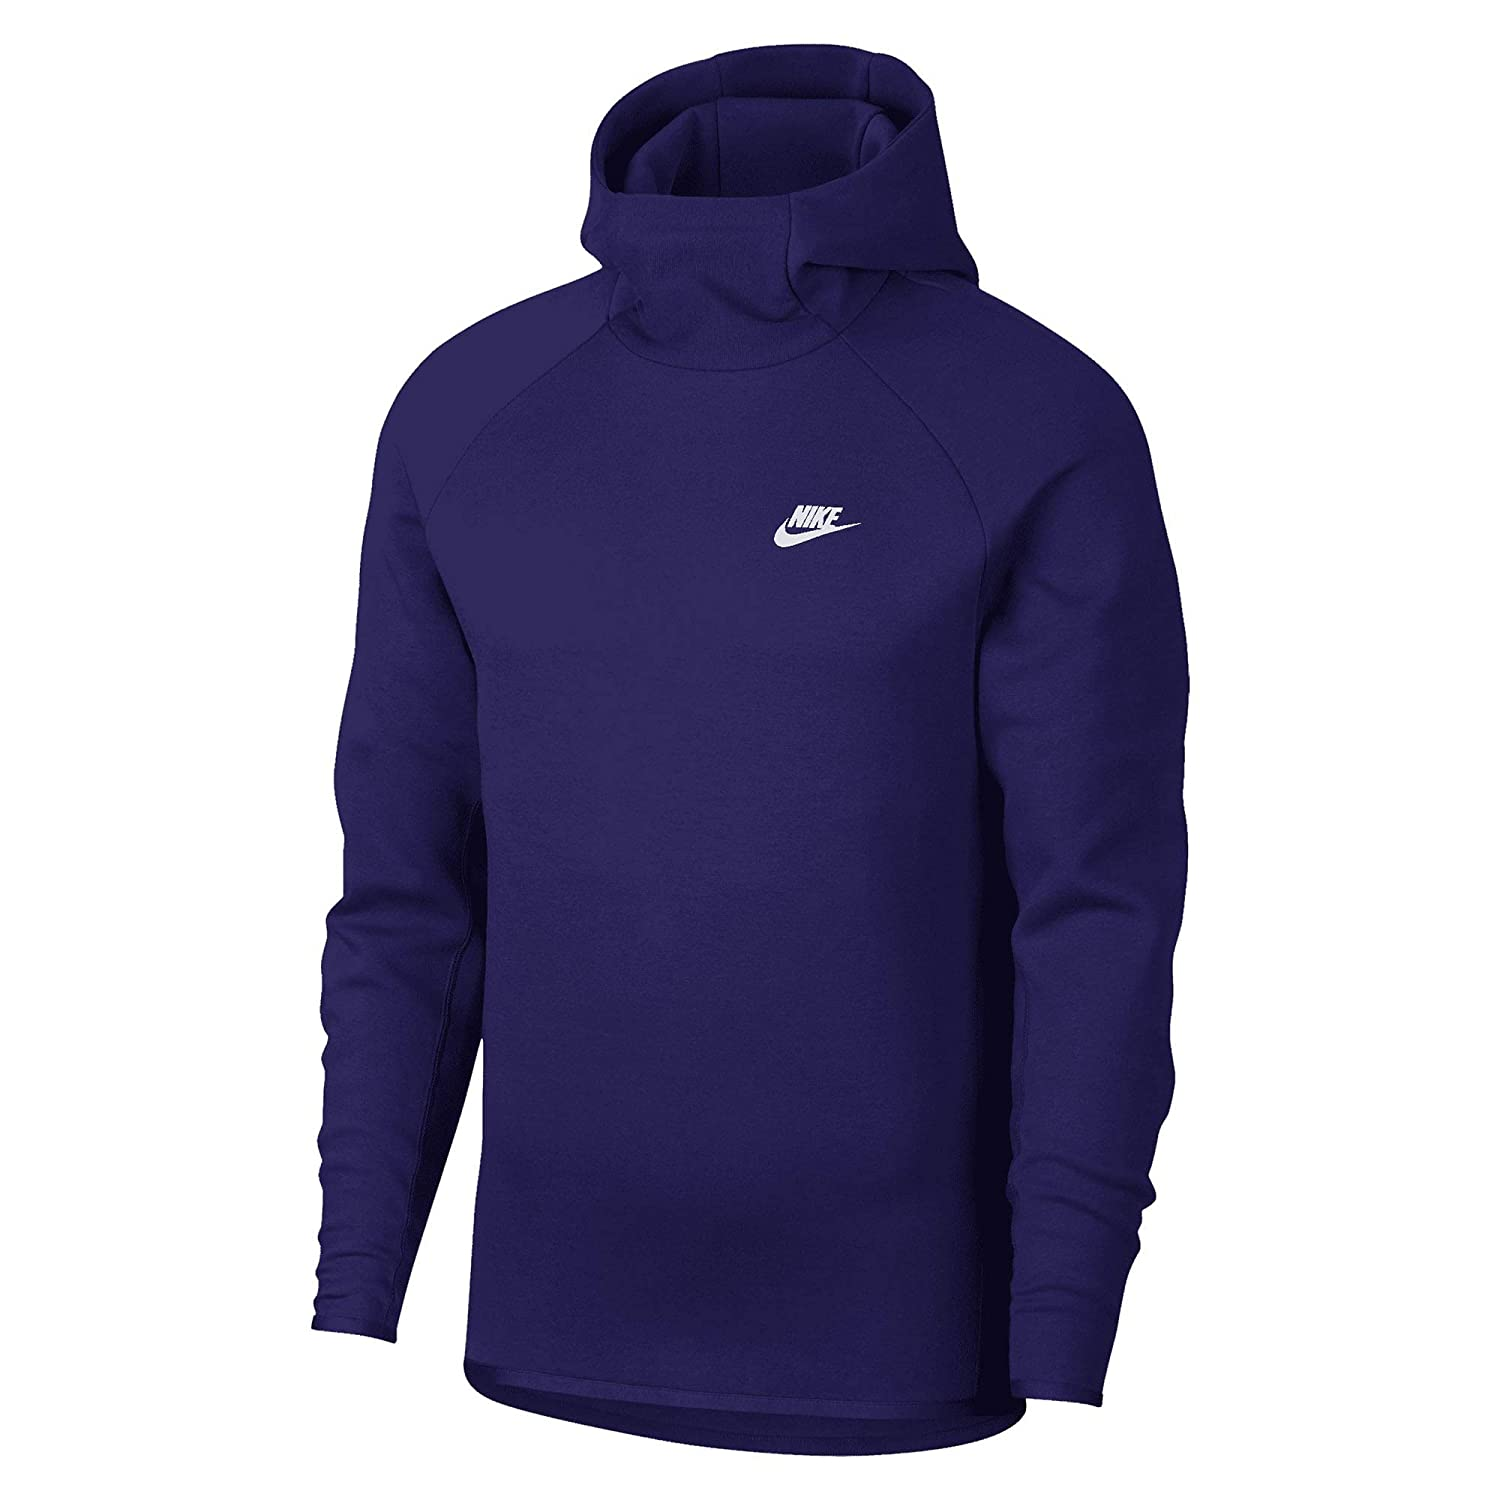 Jordan Sportswear Tech Fleece Pullover Hoodie Mens